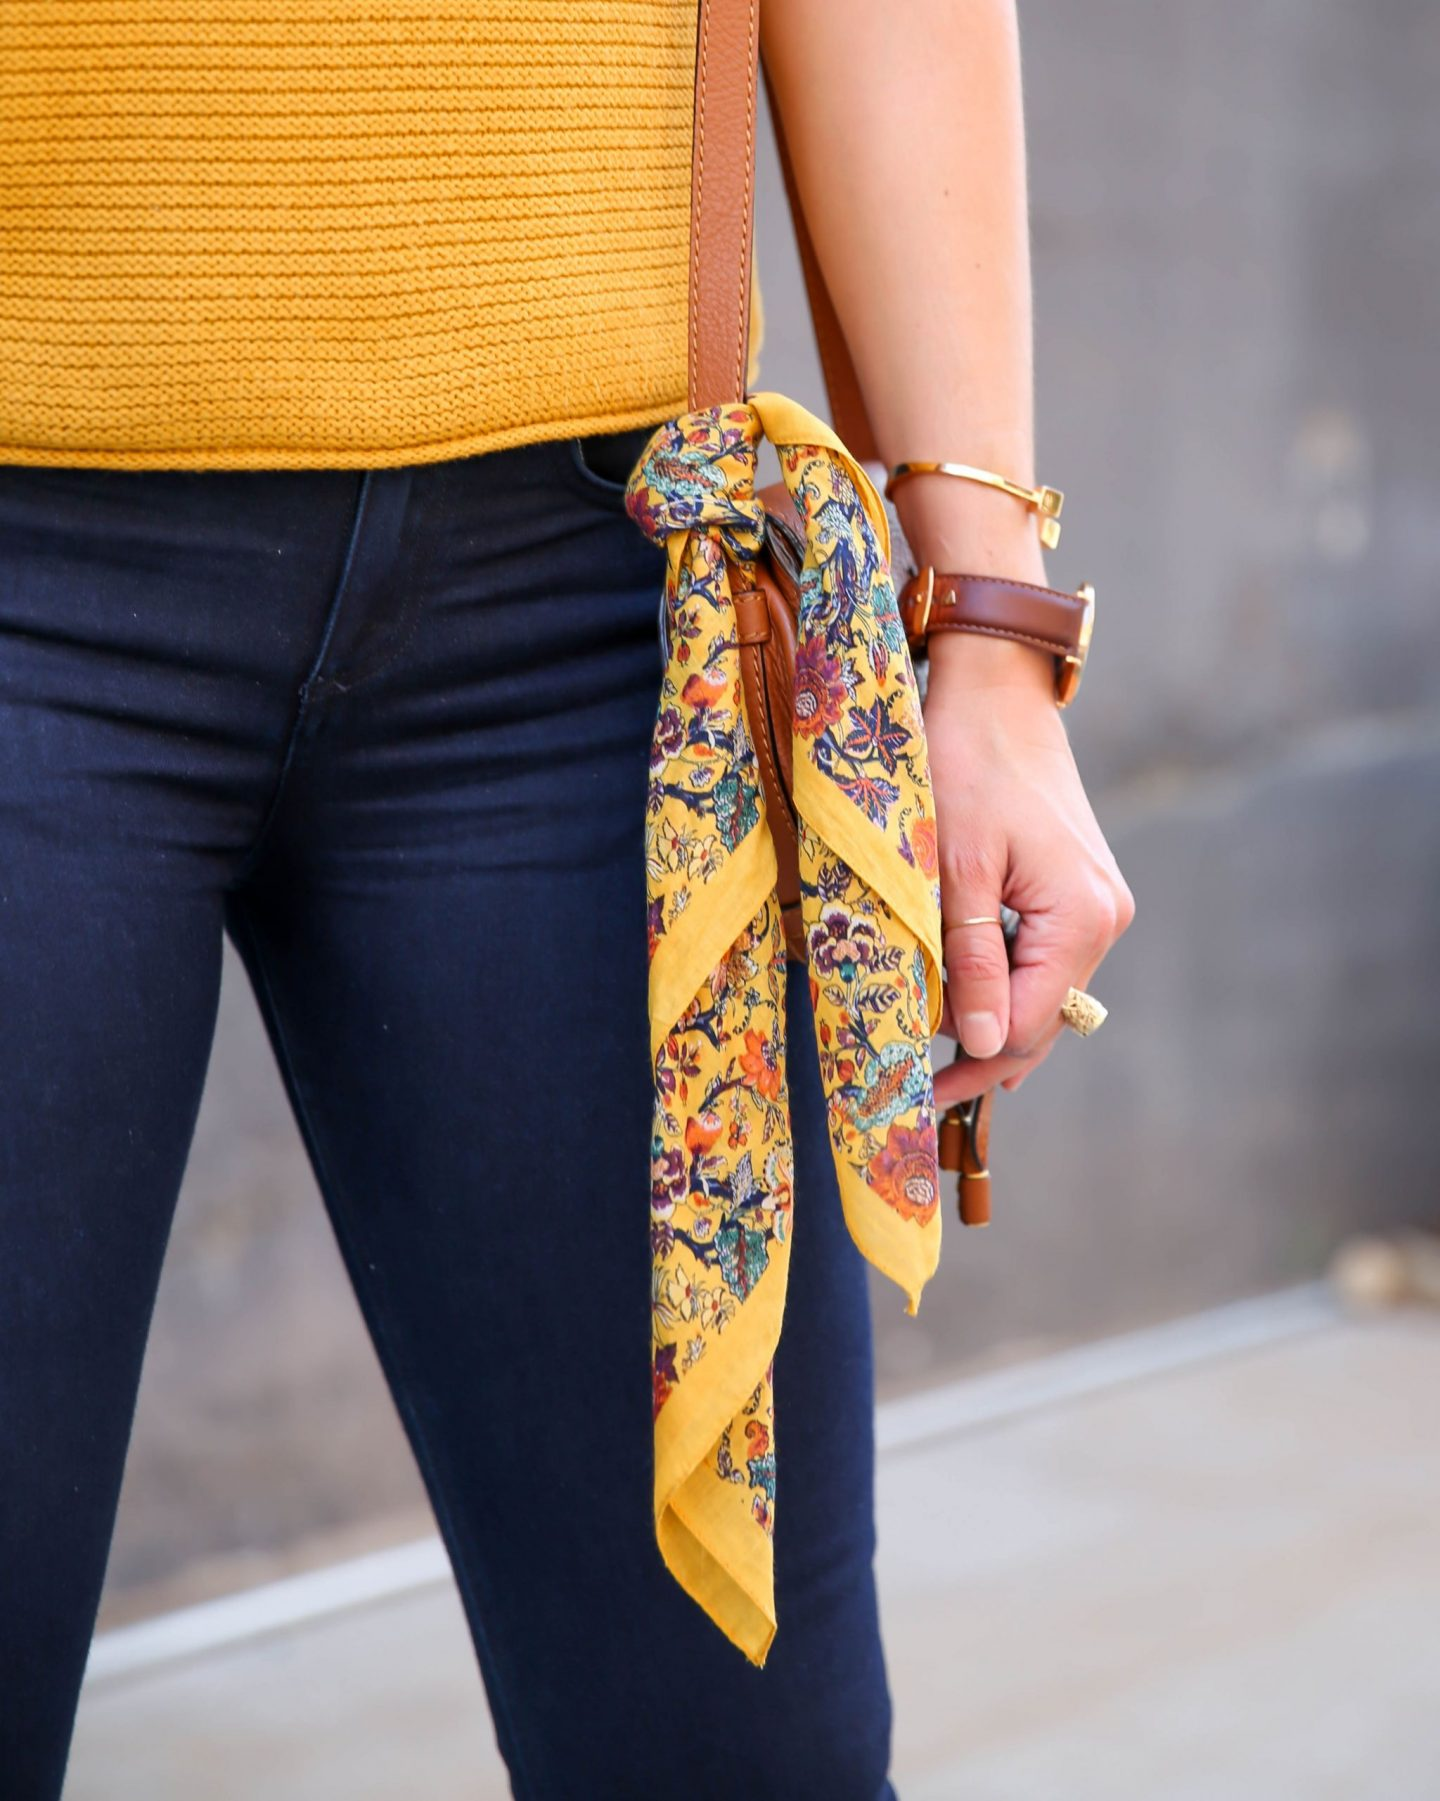 bandana tied on bag - Lauren schwaiger style blog